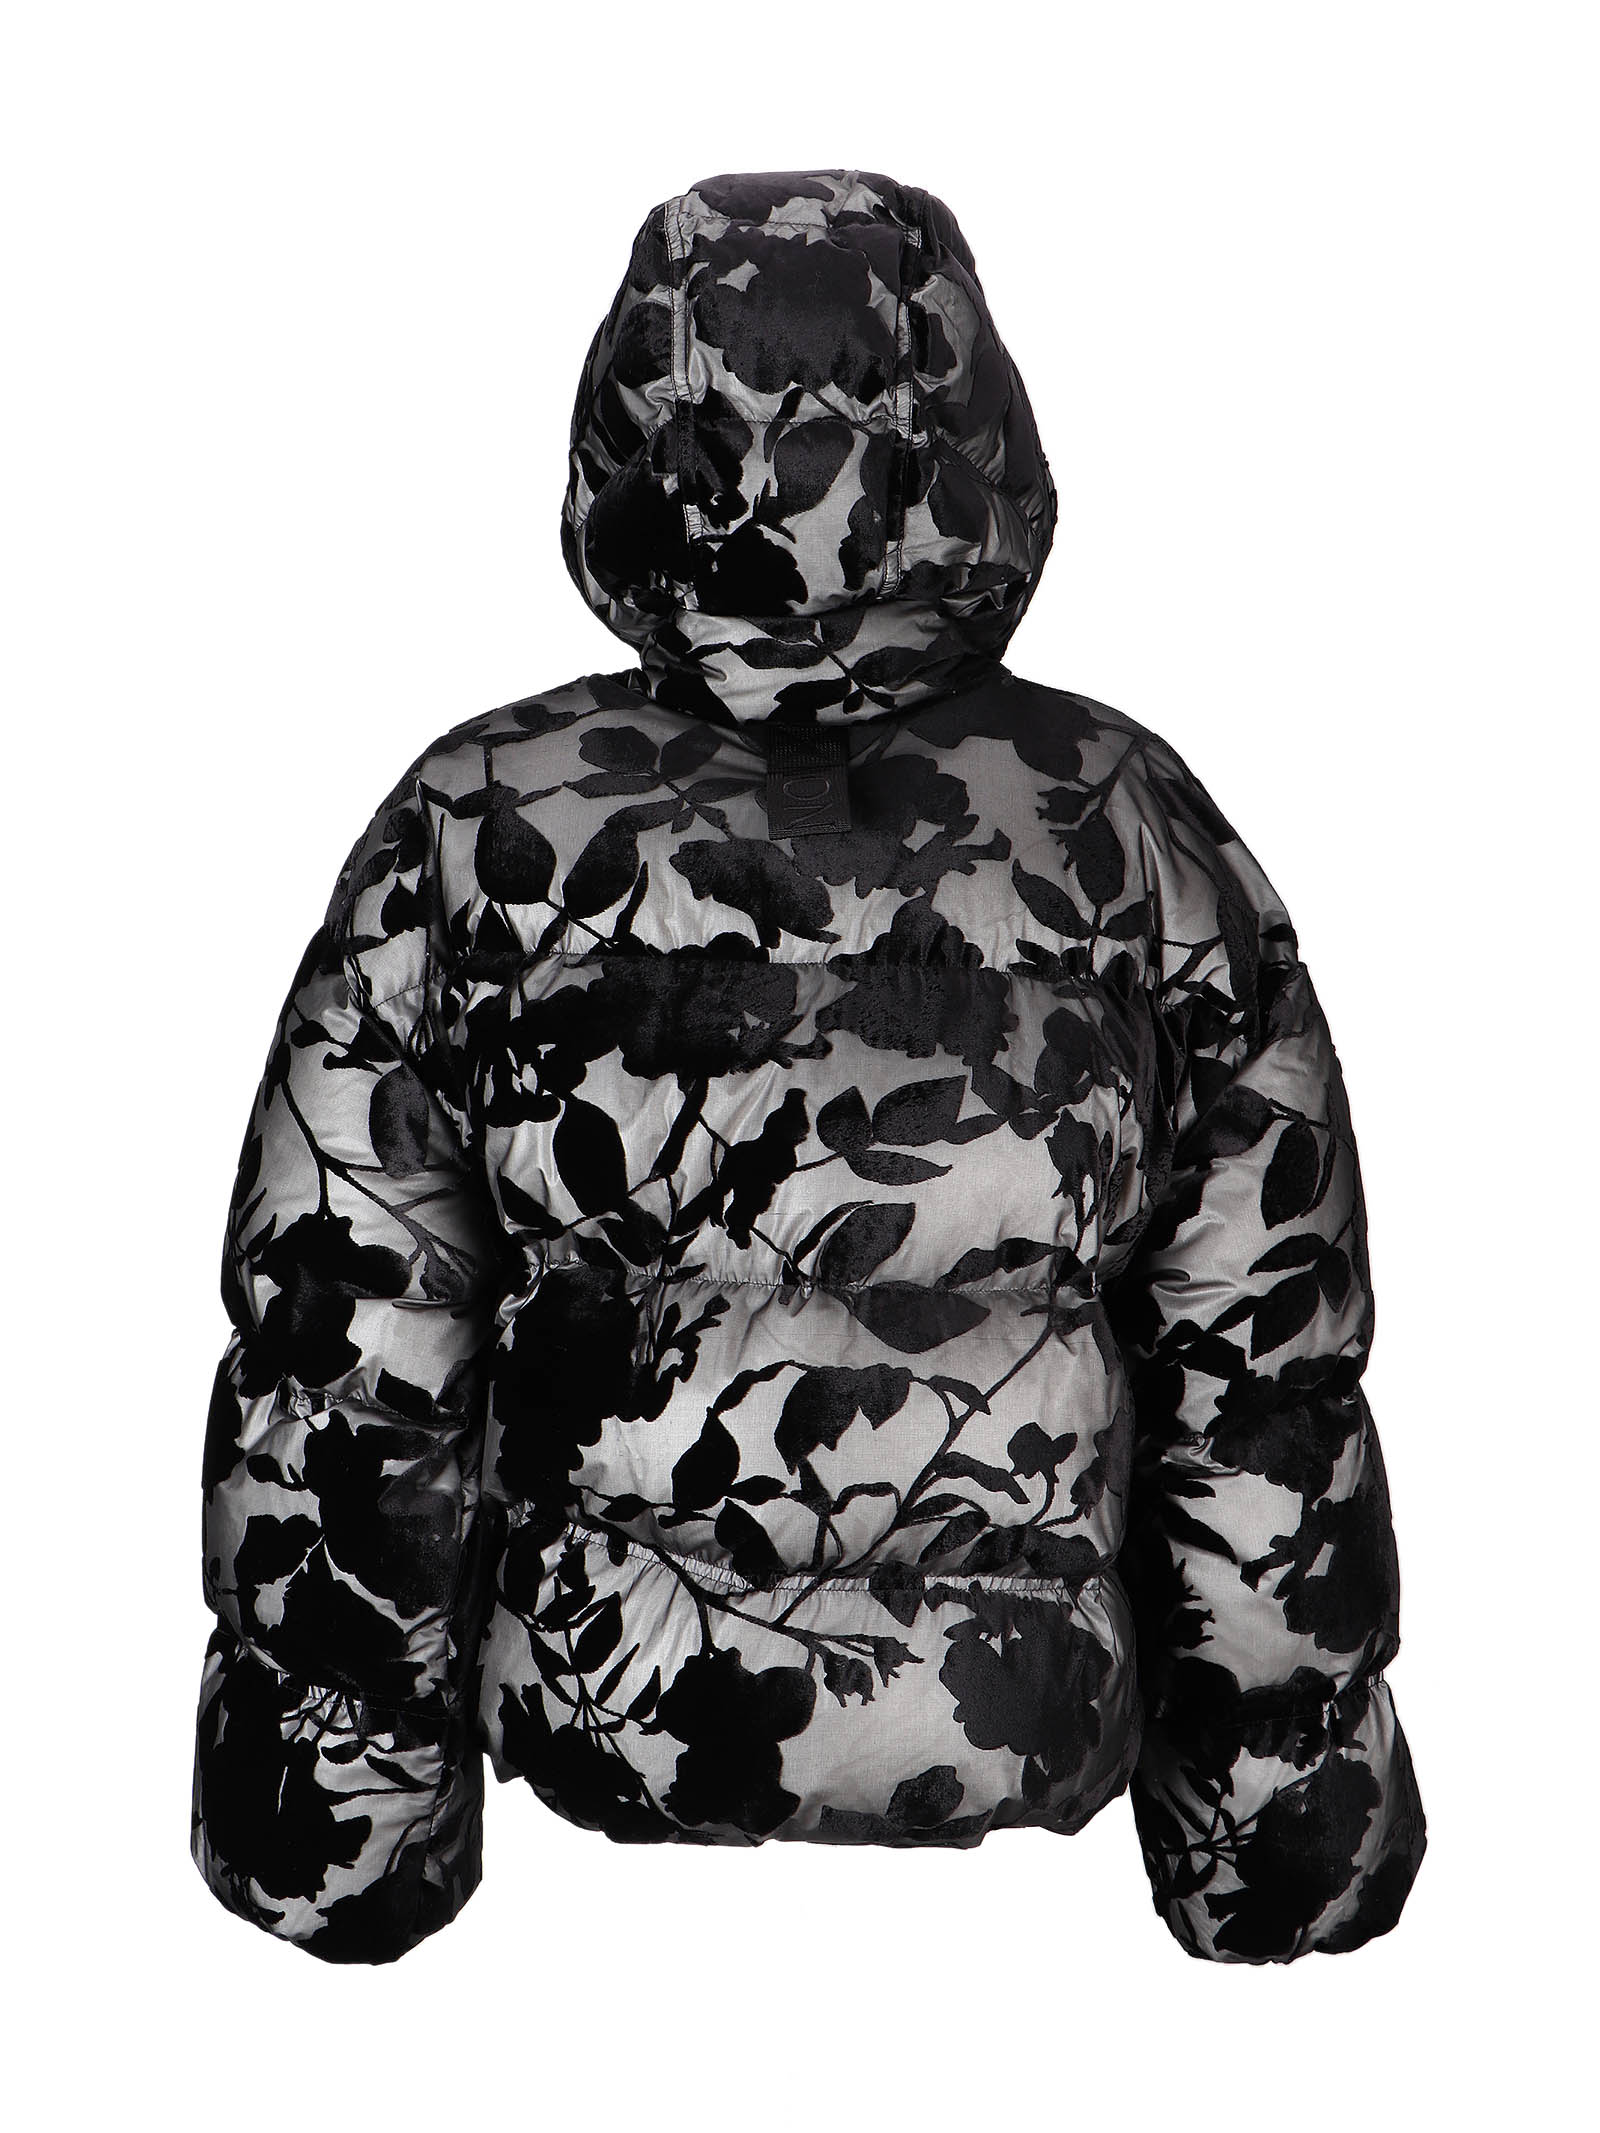 Immagine di Moncler Genius | 2 Moncler 1952 Isa Embroidered Down Jacket